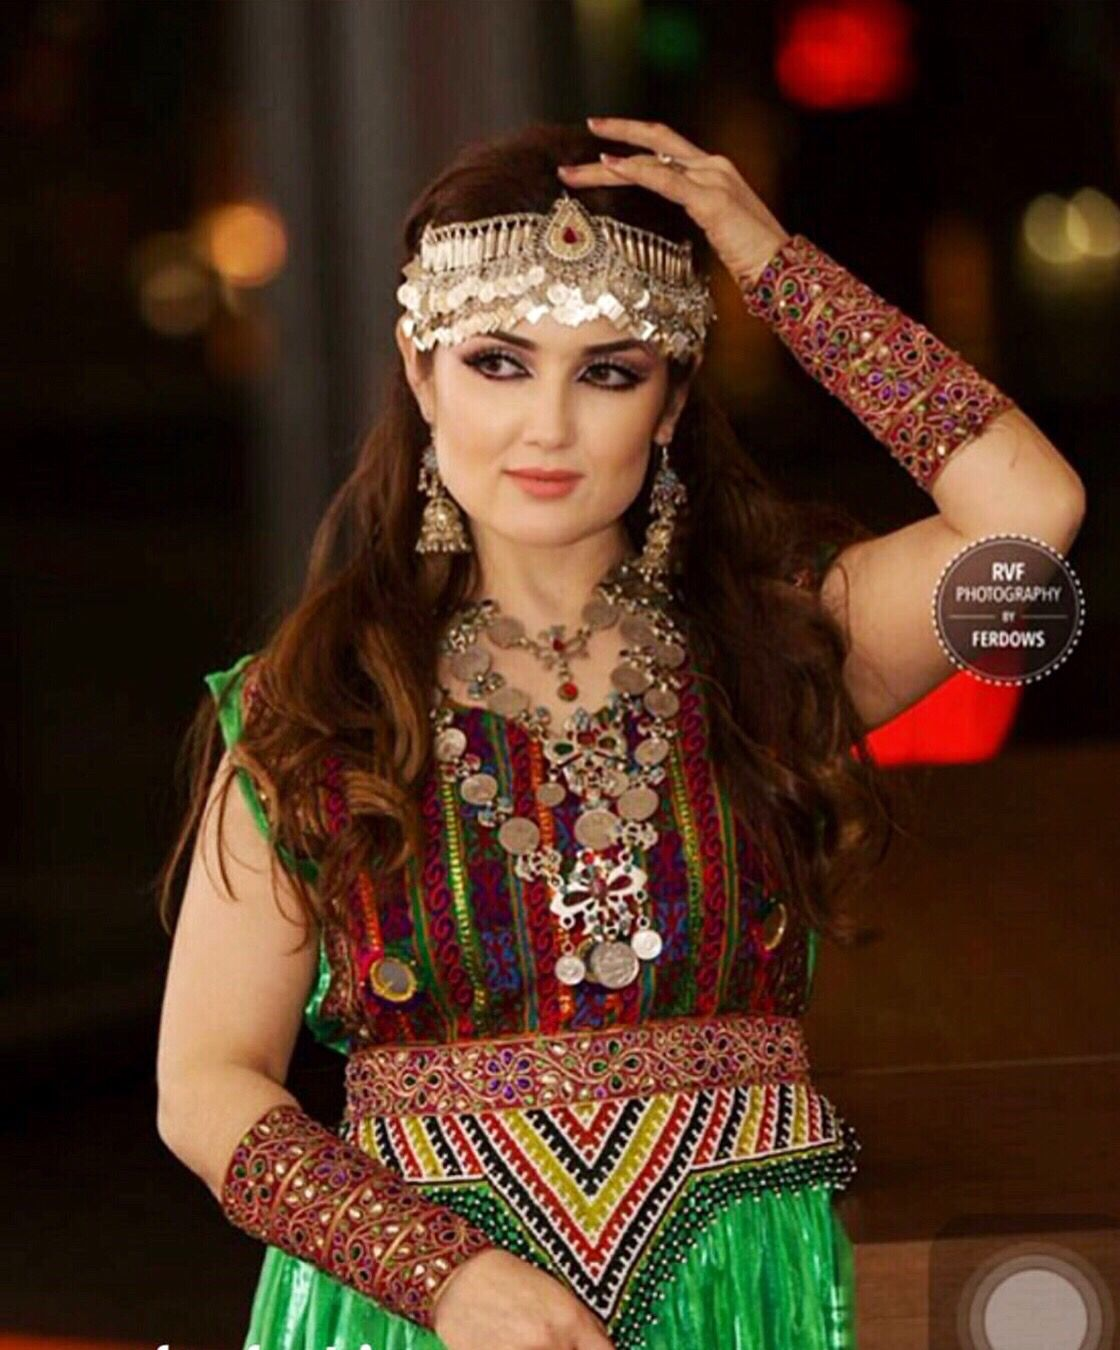 Afghan Style Dress Jewelry Afghan Style Pinterest Kost M Ideen Kost M Und Ideen